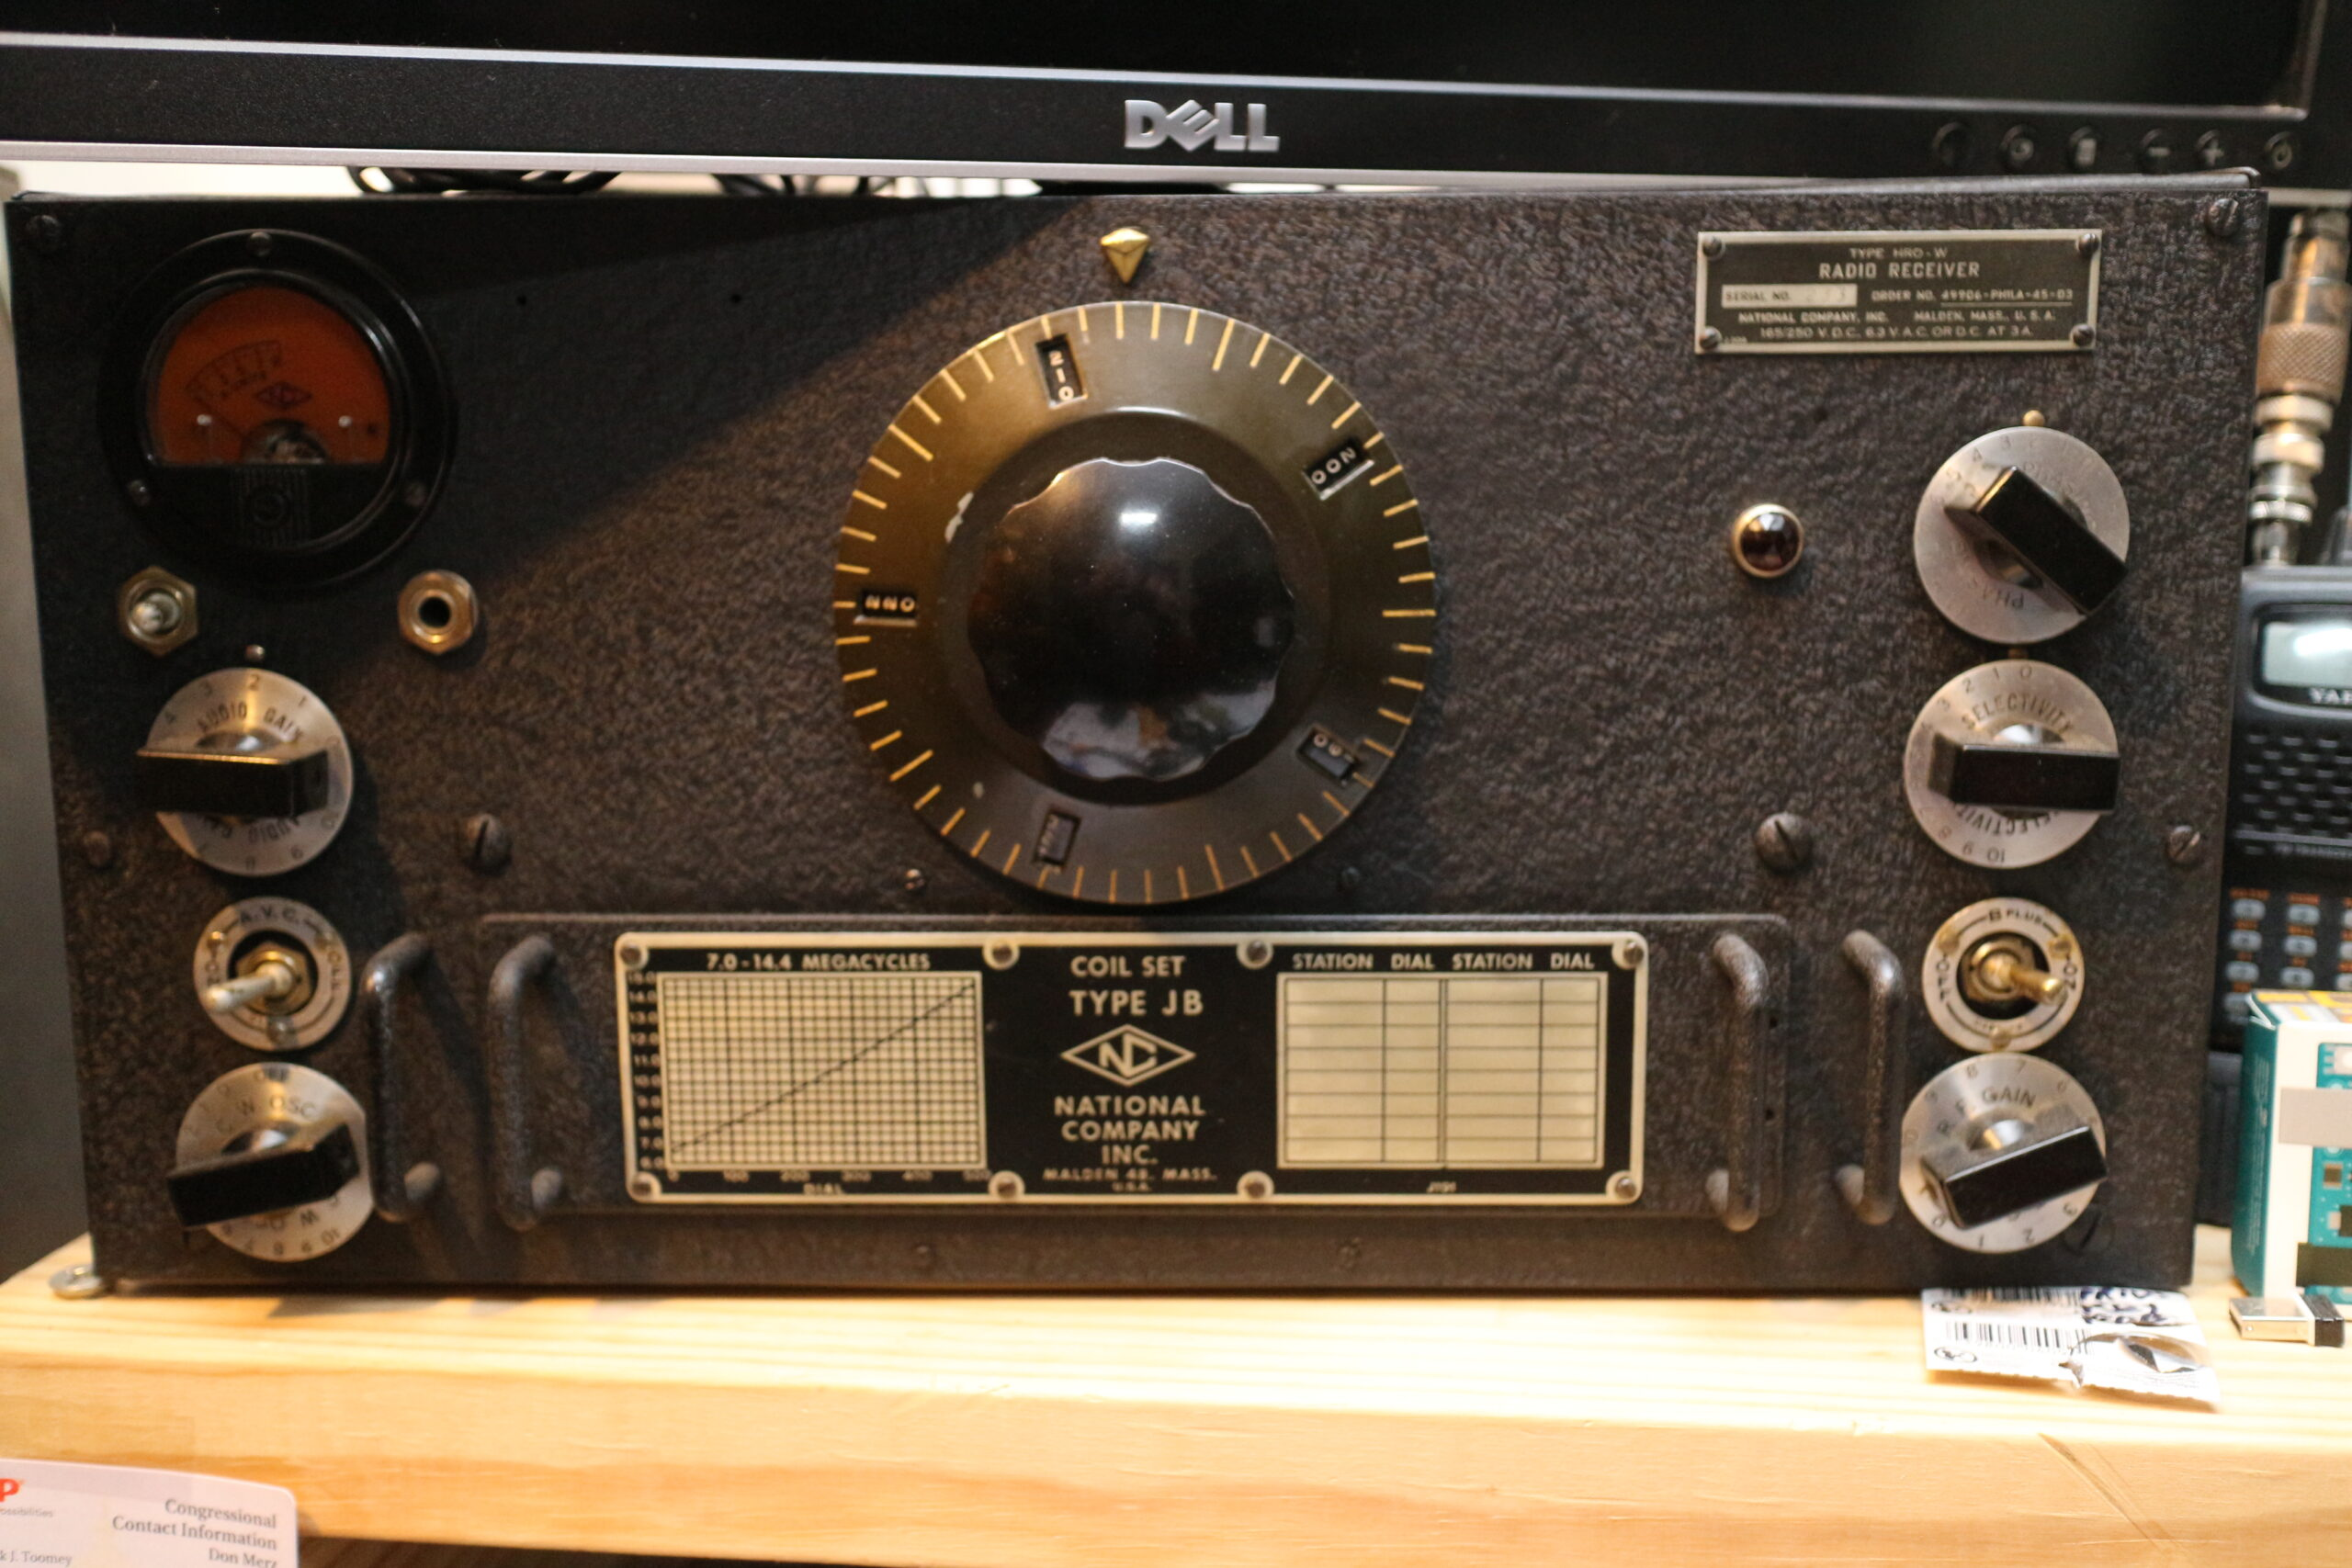 PARS WWII HRO Receiver